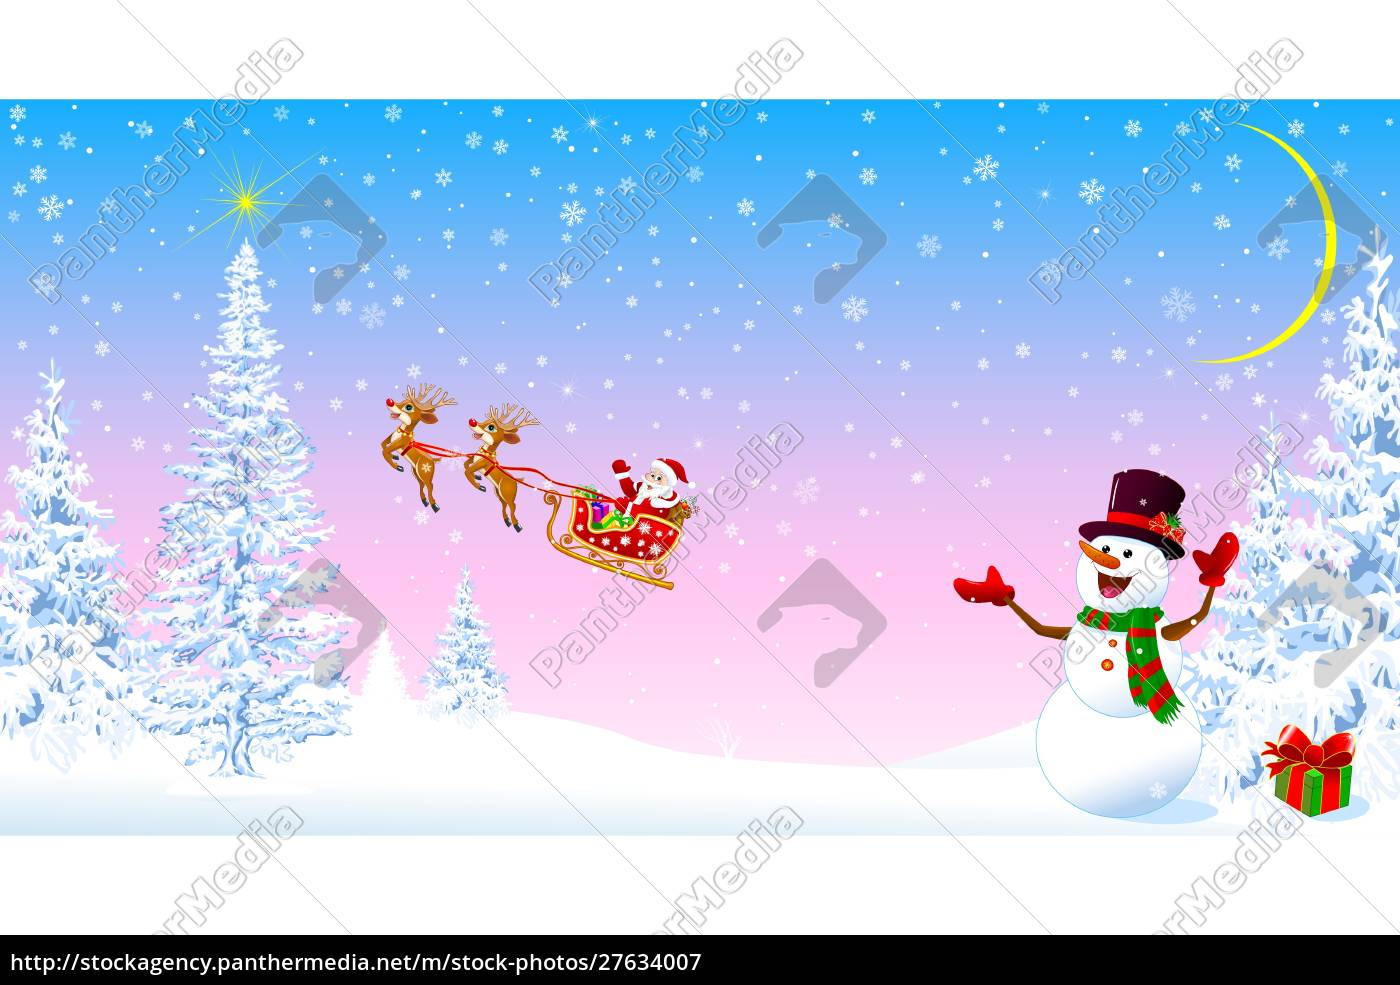 santa, claus, and, snowman, welcomes, christmas - 27634007